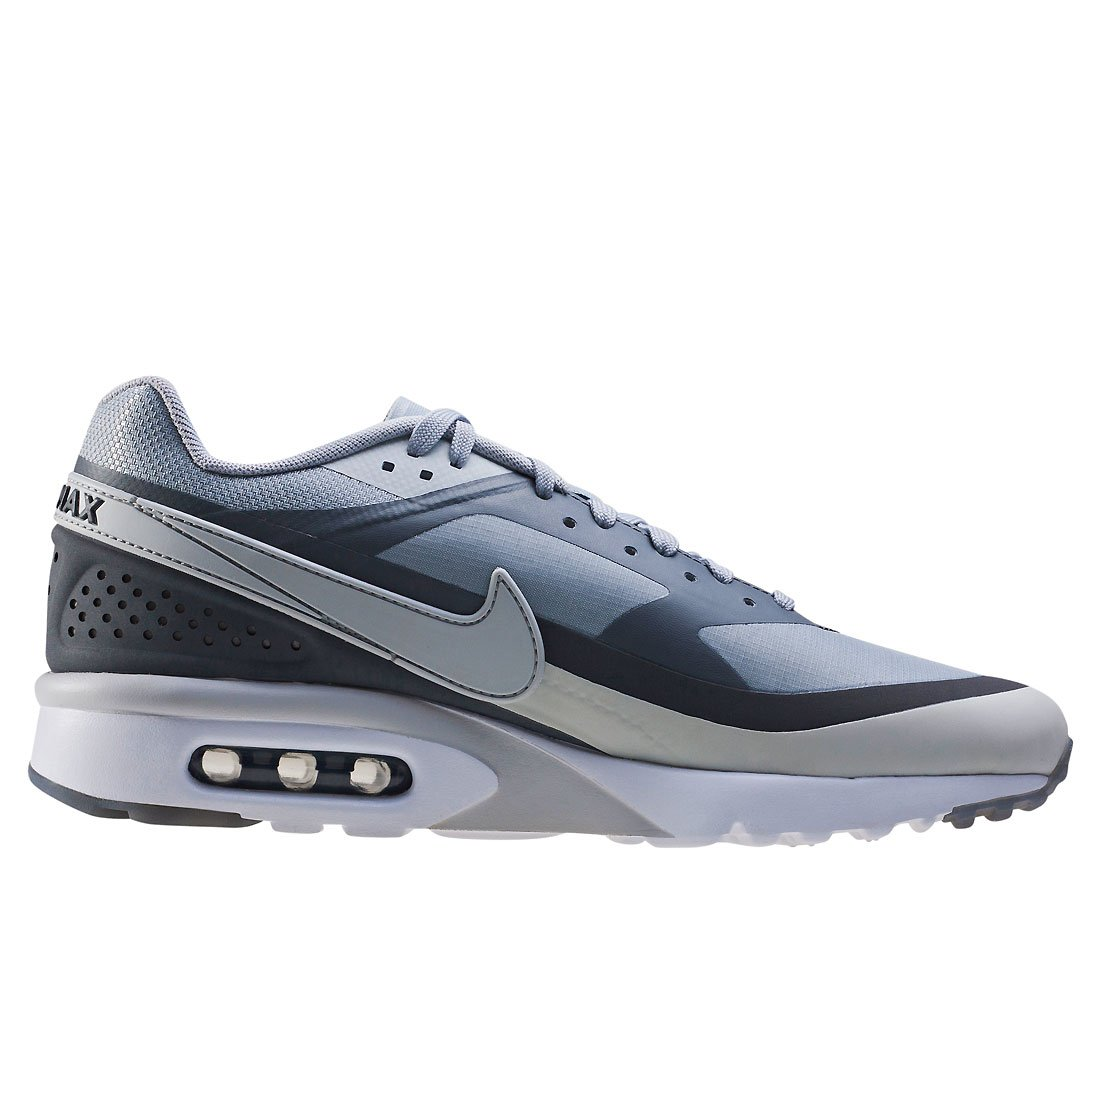 Nike Men's Baskets Air Max Bw Ultra 819475006 Trainers